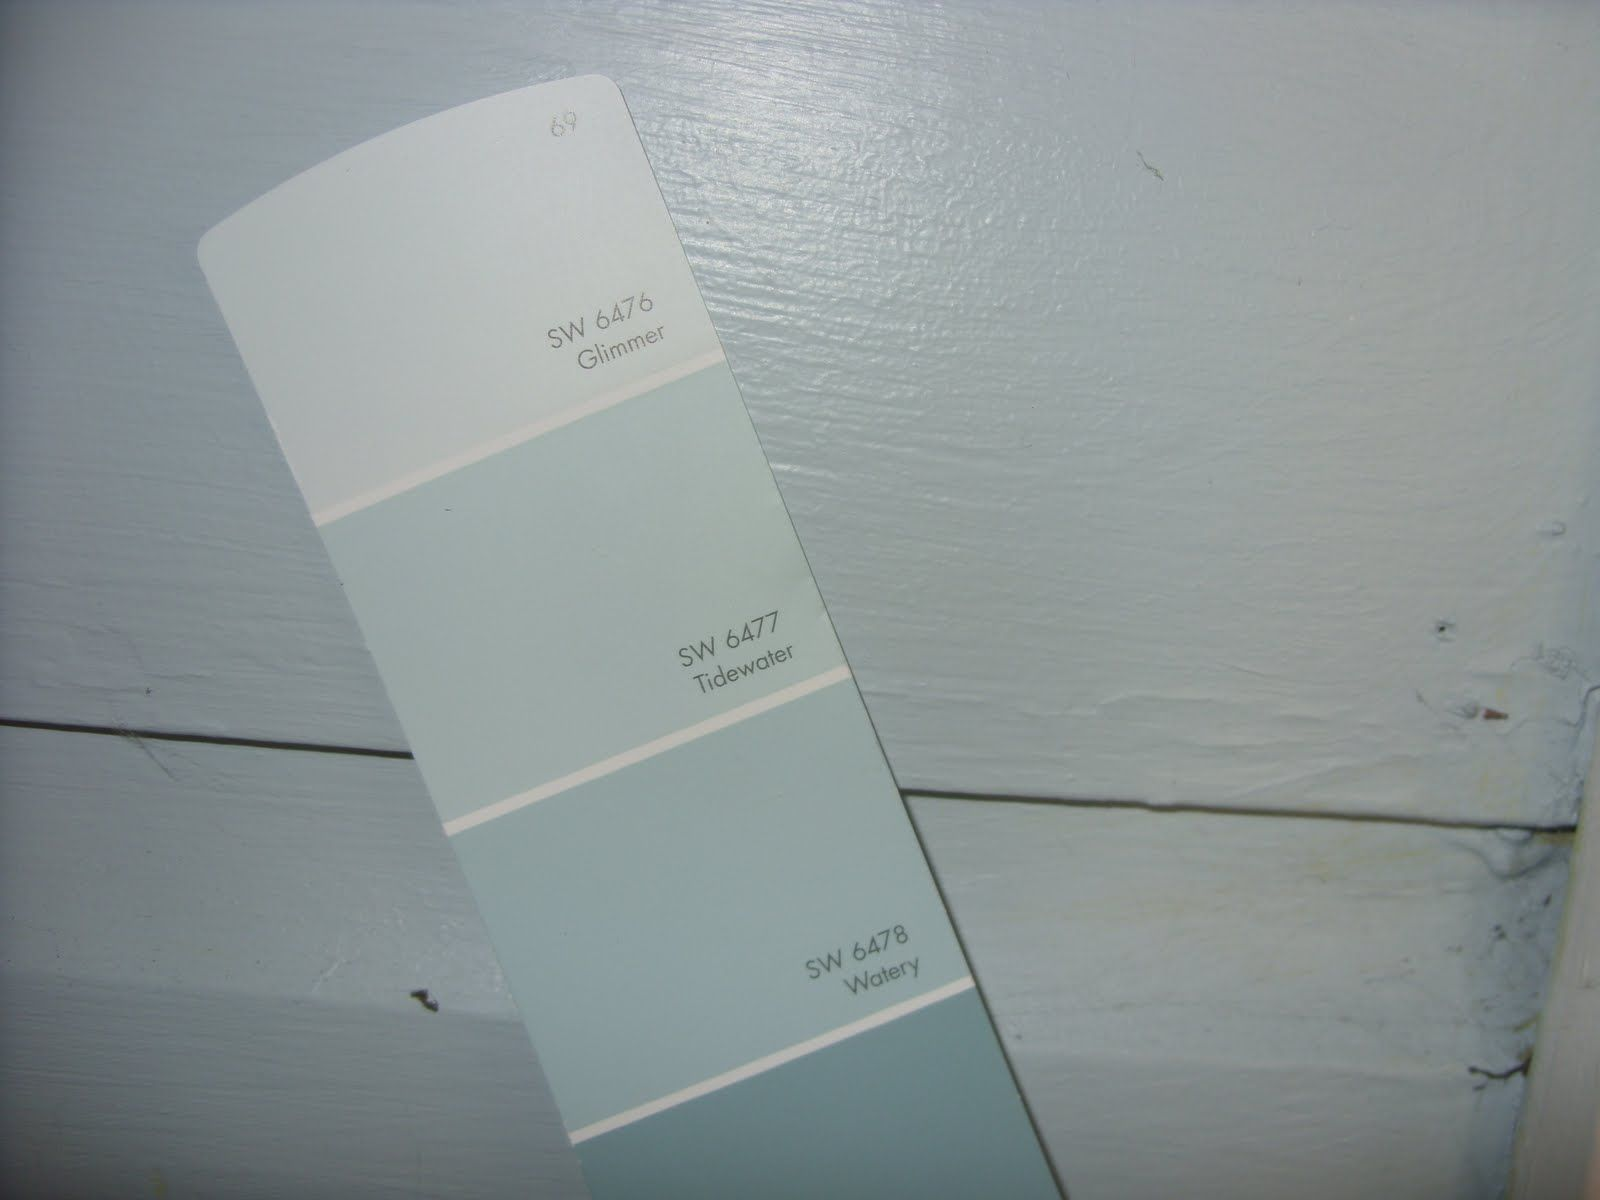 And here s another paint chip close to that colorr